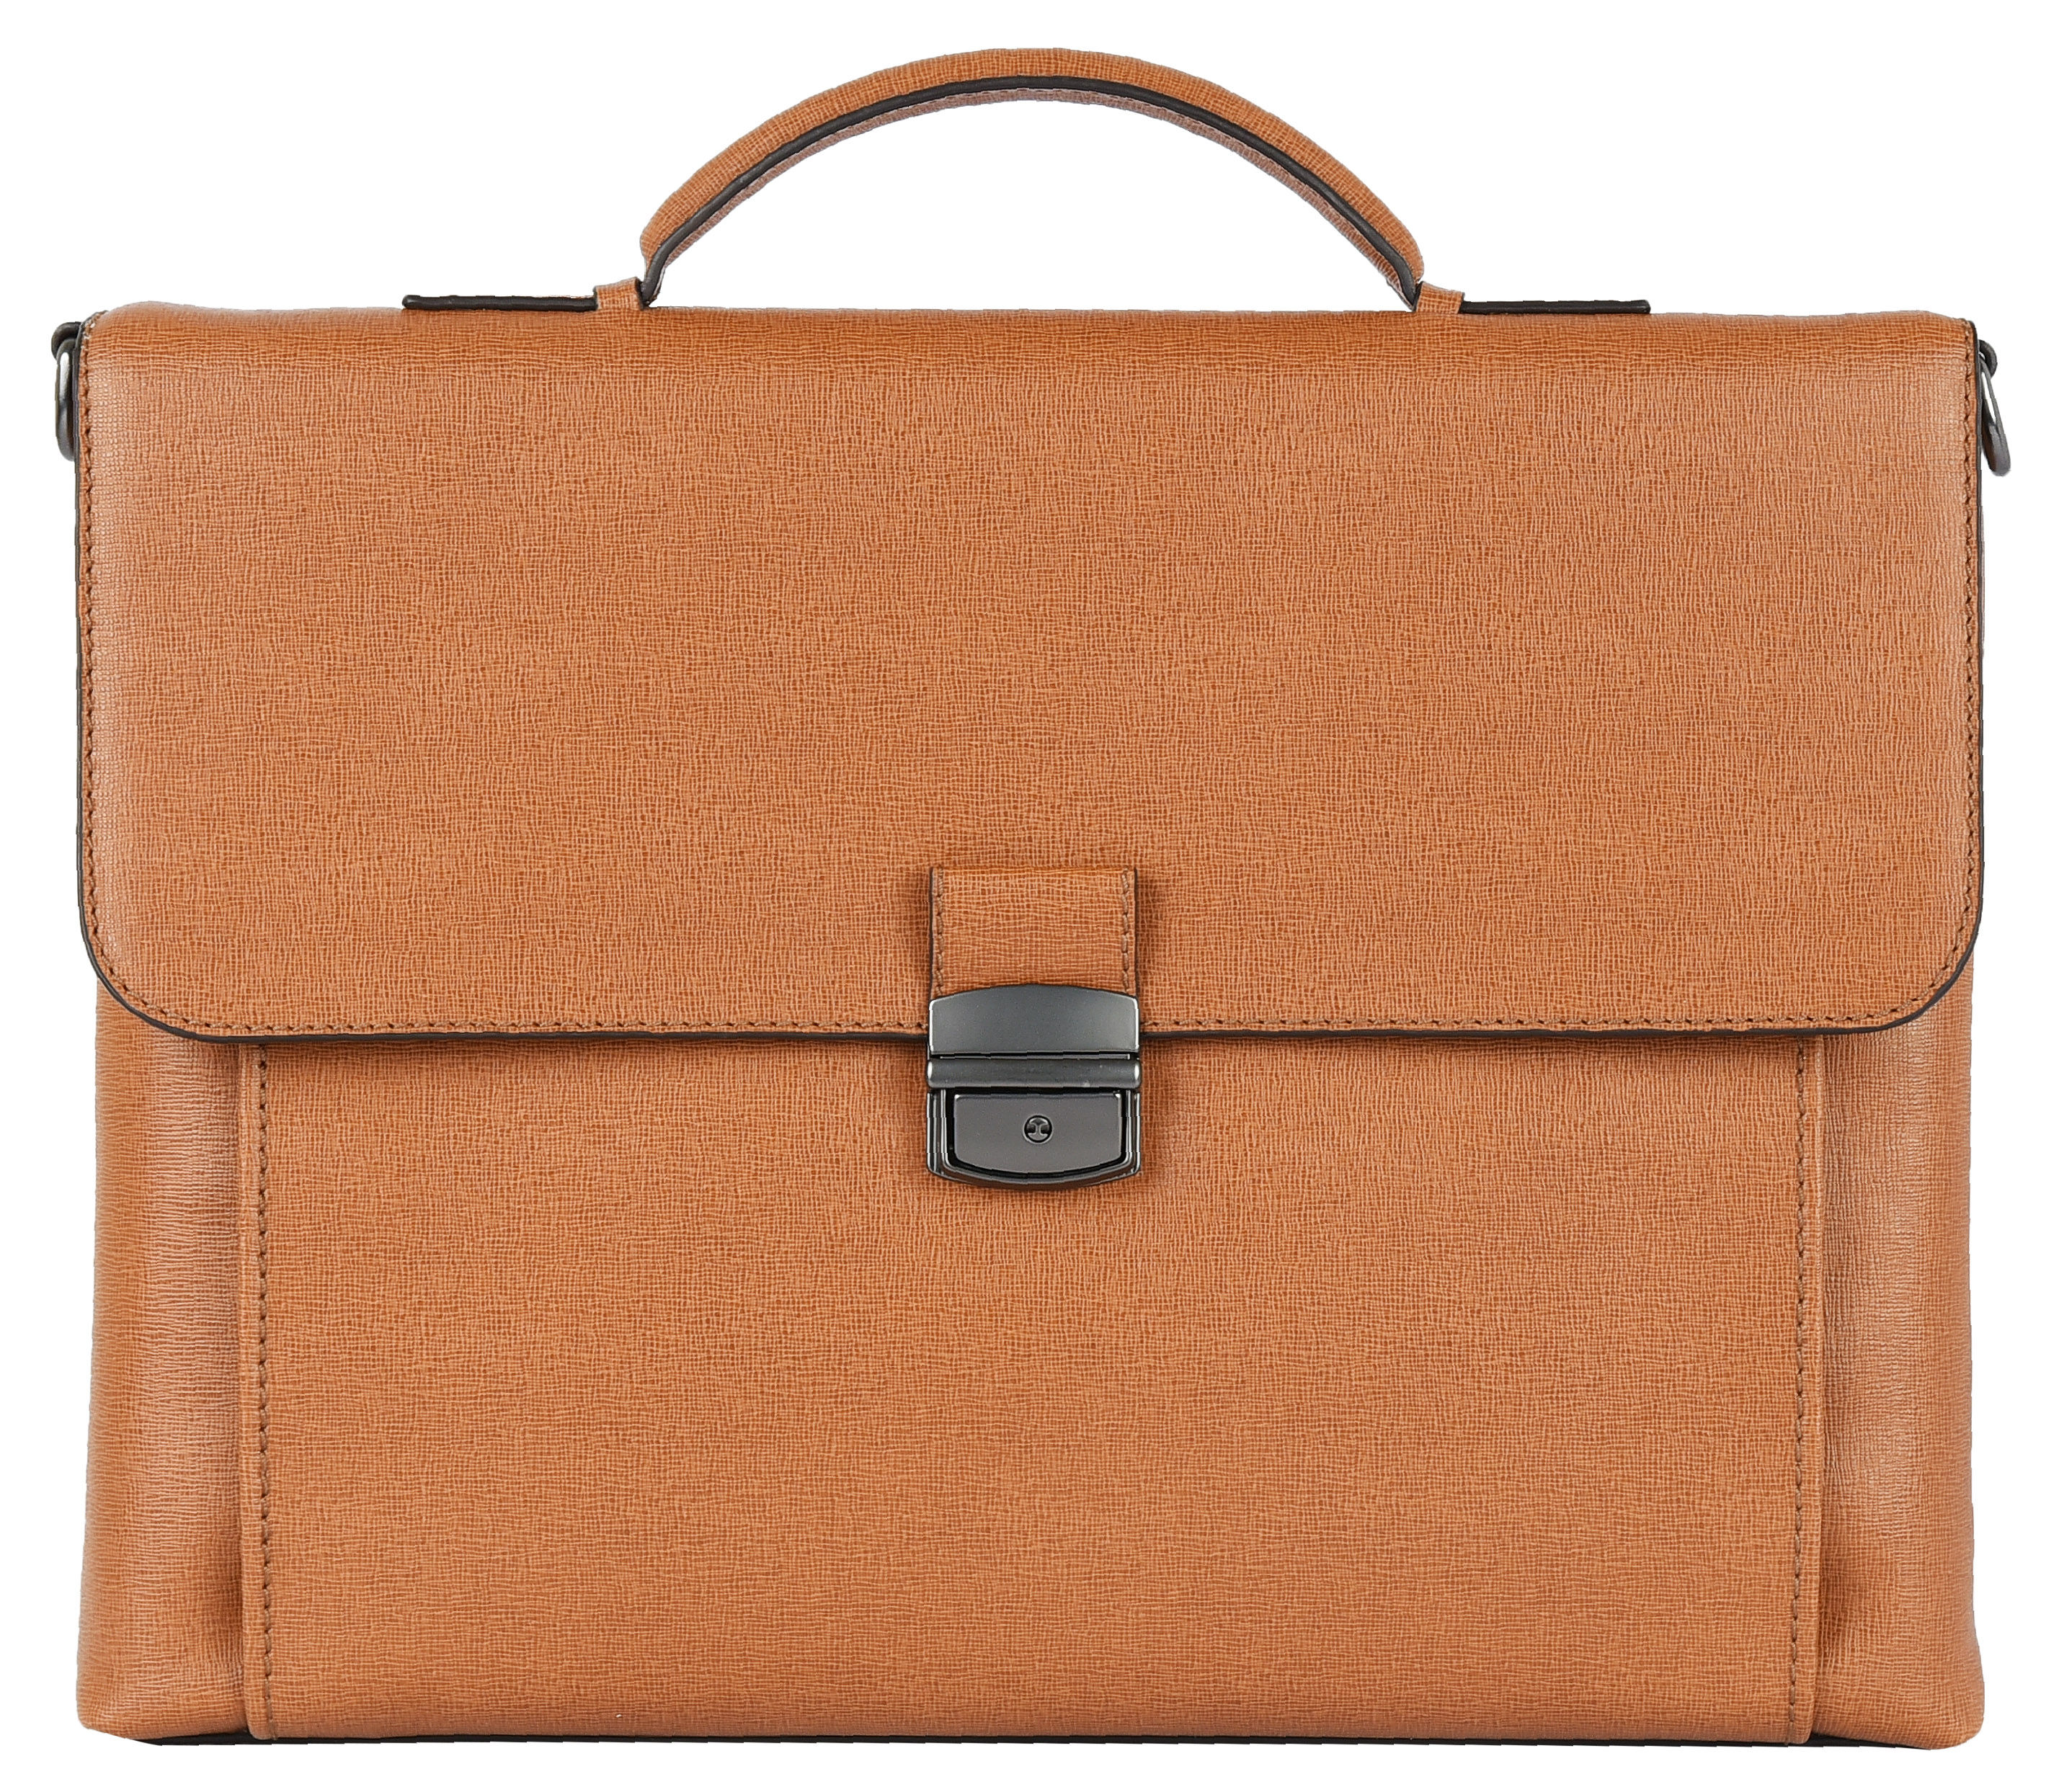 Eske Jules Laptop Bag - Tan